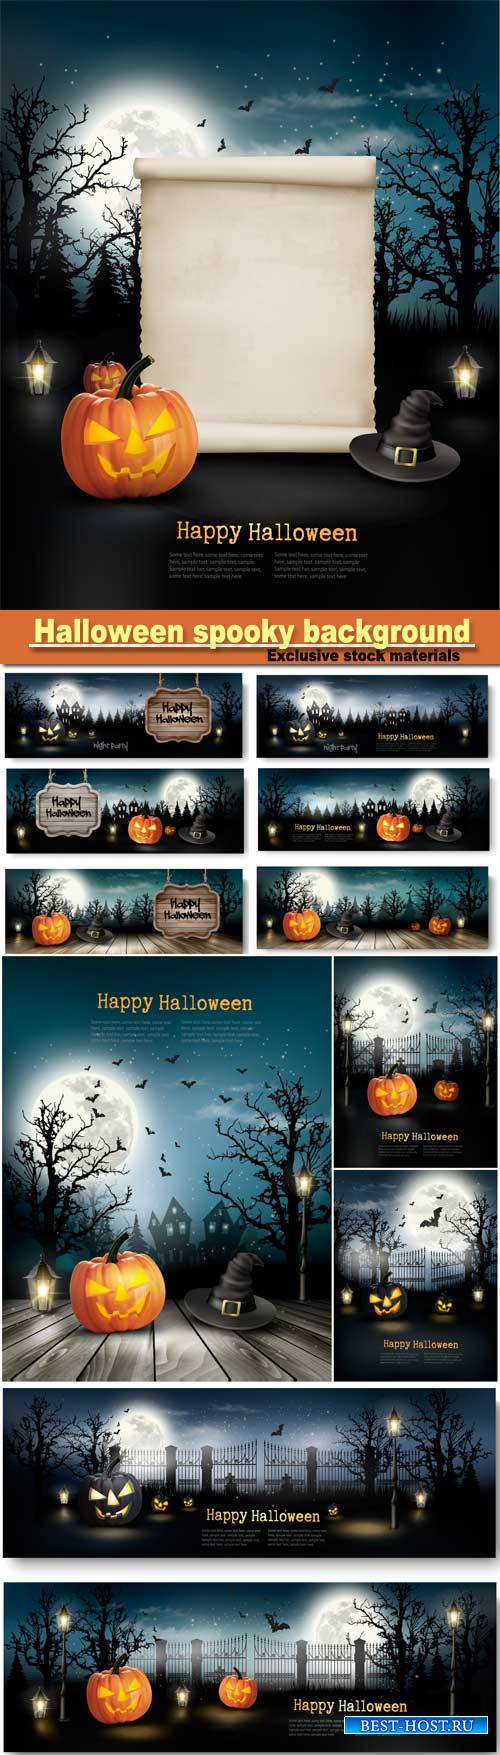 Halloween spooky background, holiday halloween banners with pumpkins